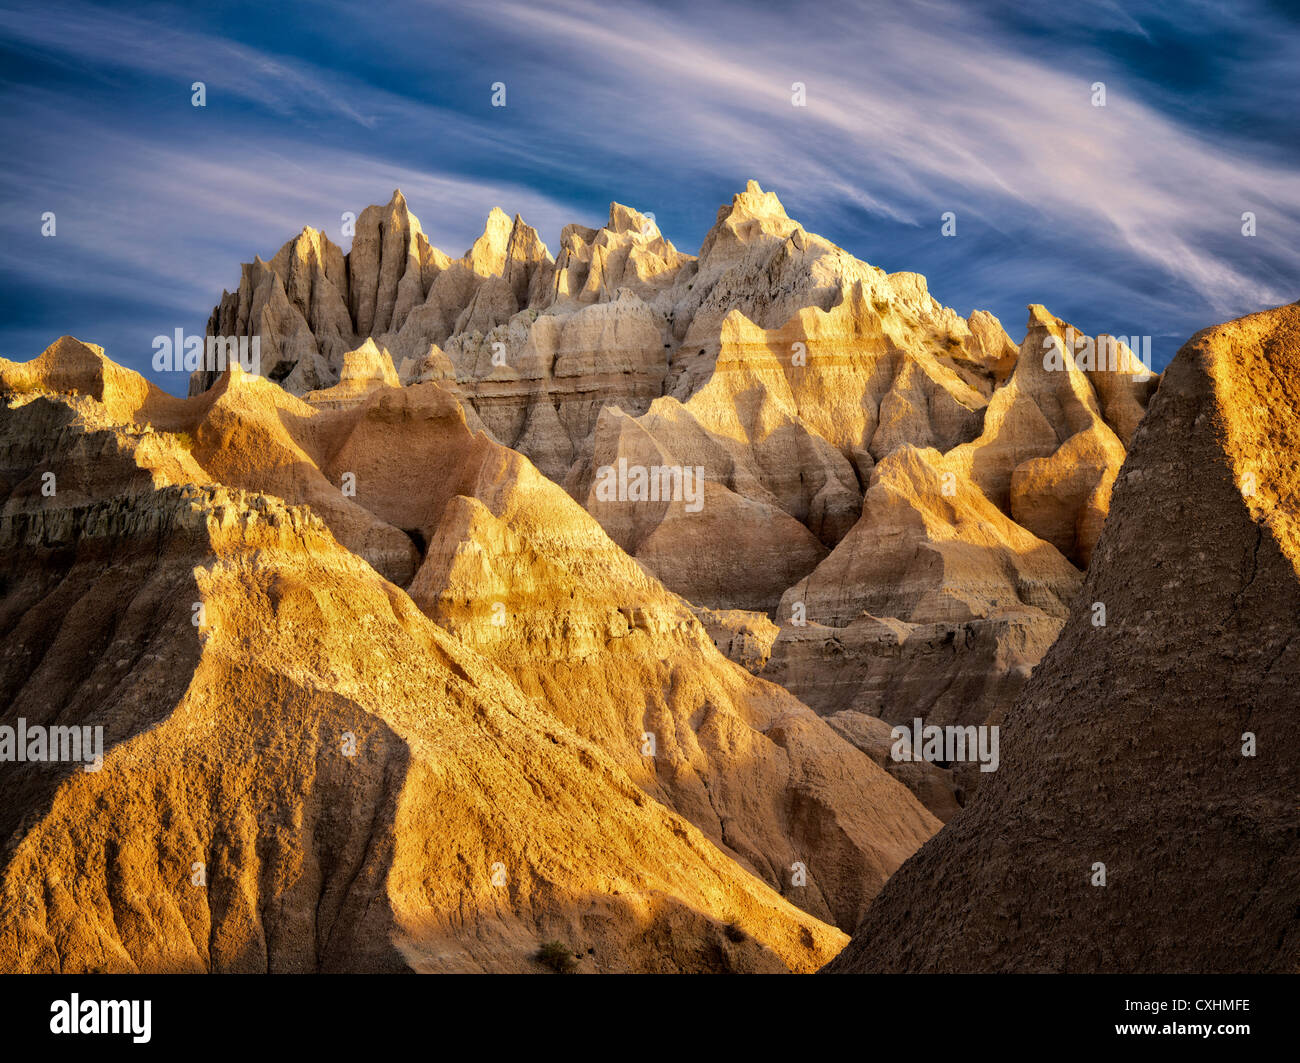 Ausgewaschene Felsformationen. Badlands Nationalpark. South Dakota Stockbild